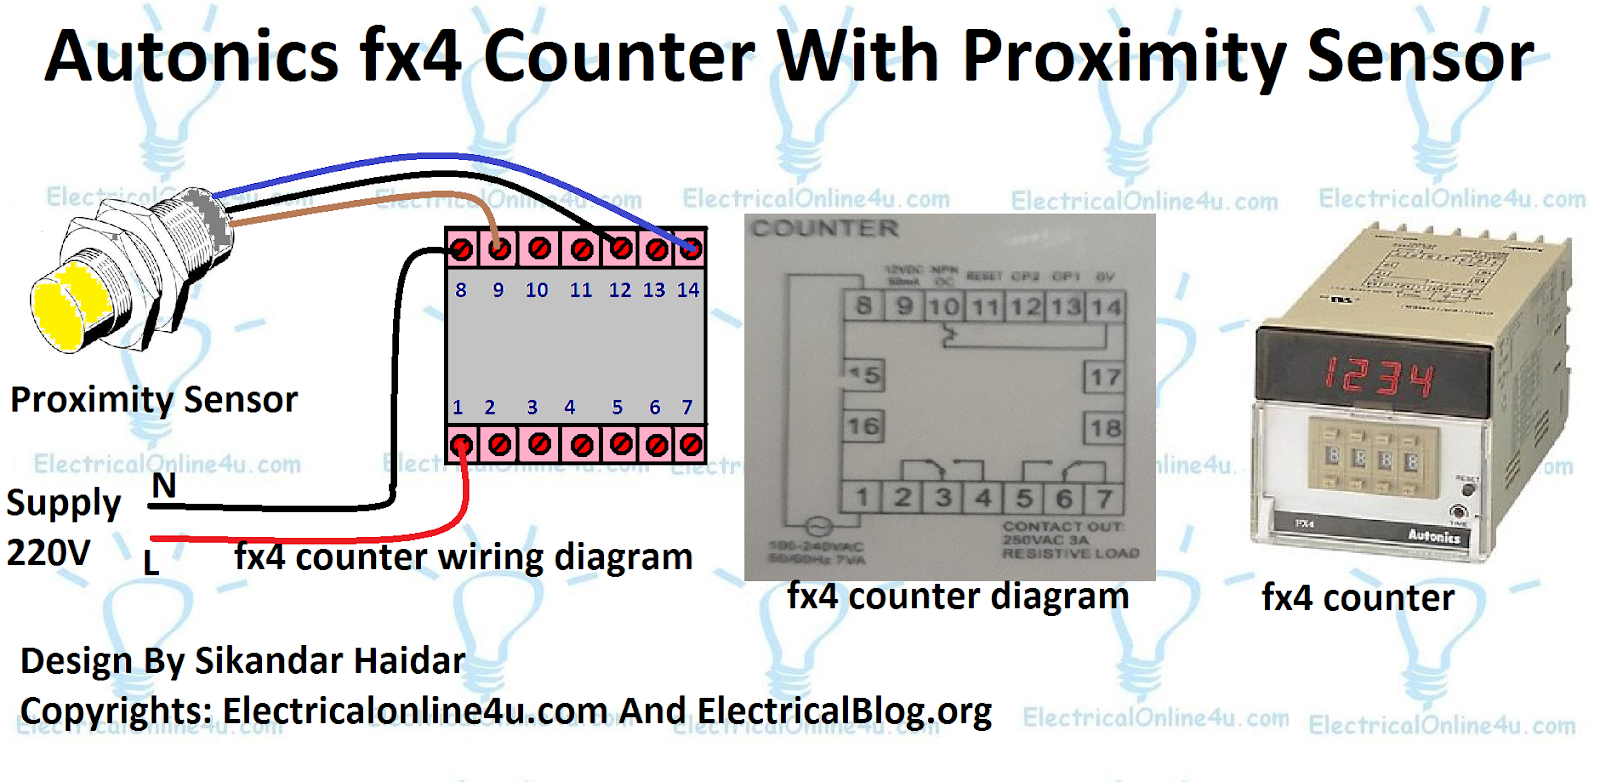 wiring diagram for counter autonics fx4 counter with proximity sensor diagram electrical wiring diagram for international 244 tractor autonics fx4 counter with proximity